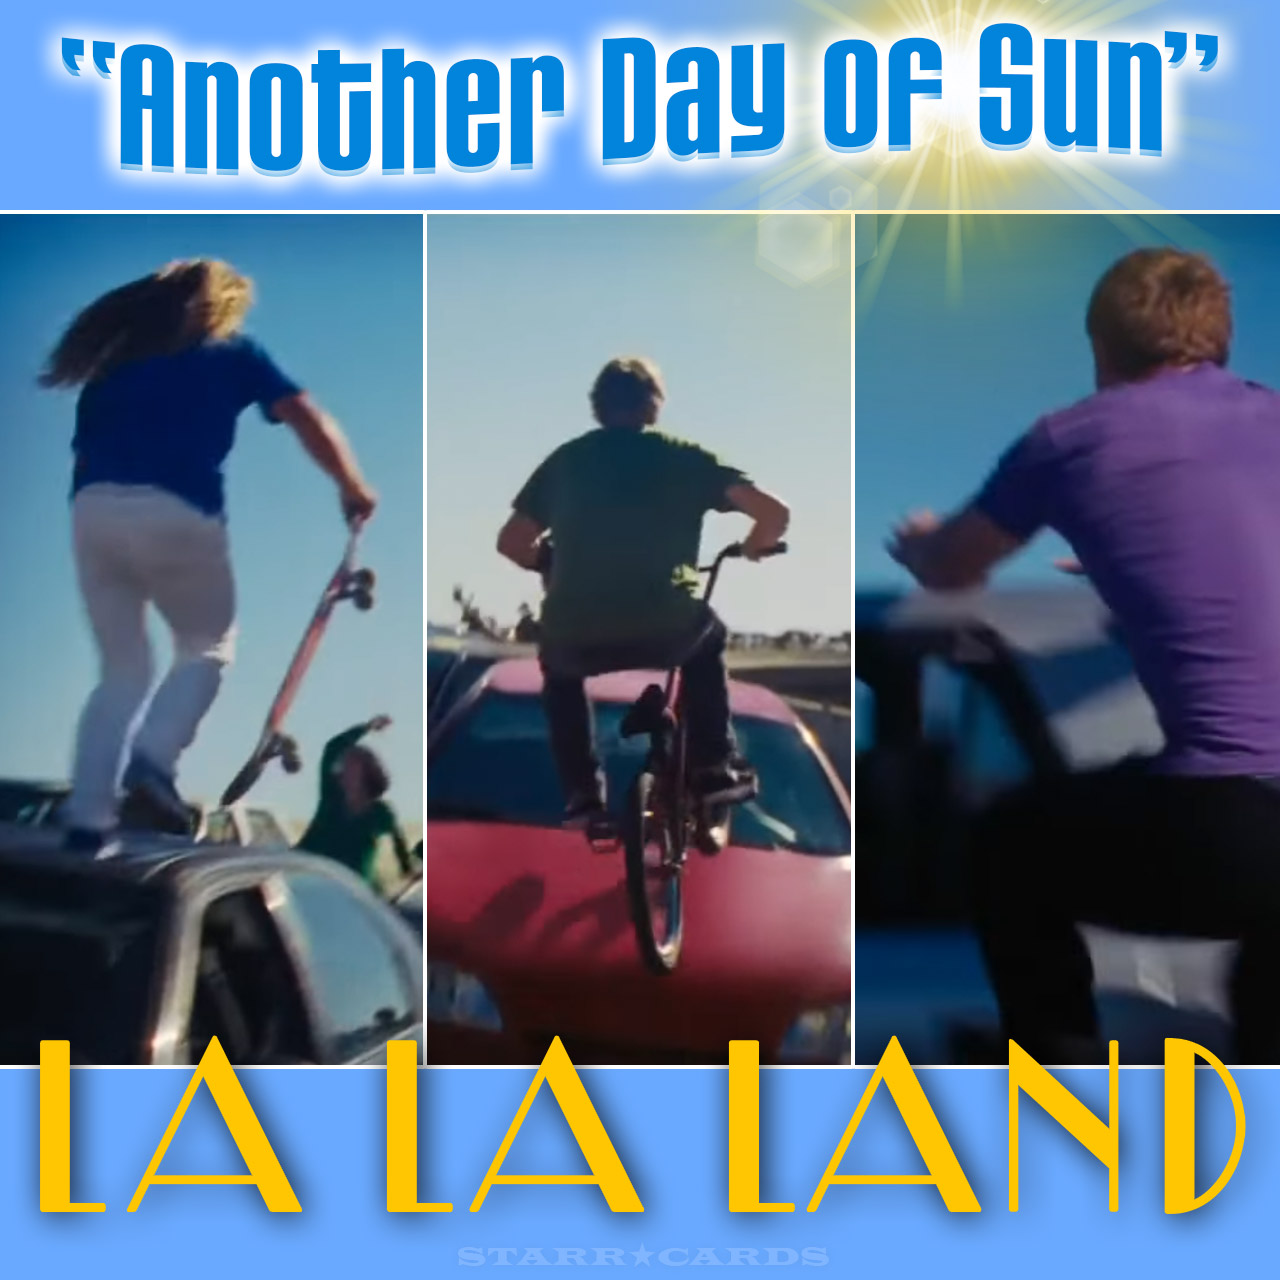 Meet The Skater Bmxer And Freerunner In Opening Scene From La La Land